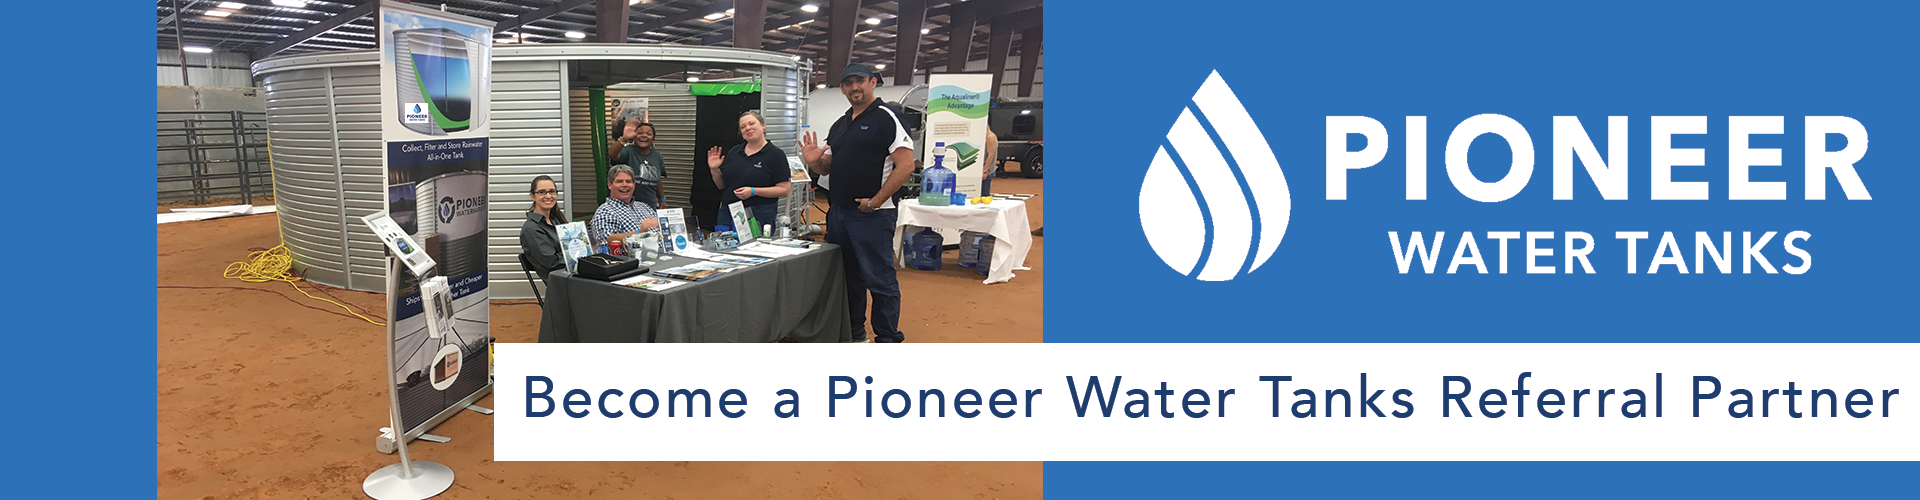 Pioneer Water Tanks Referral Partner